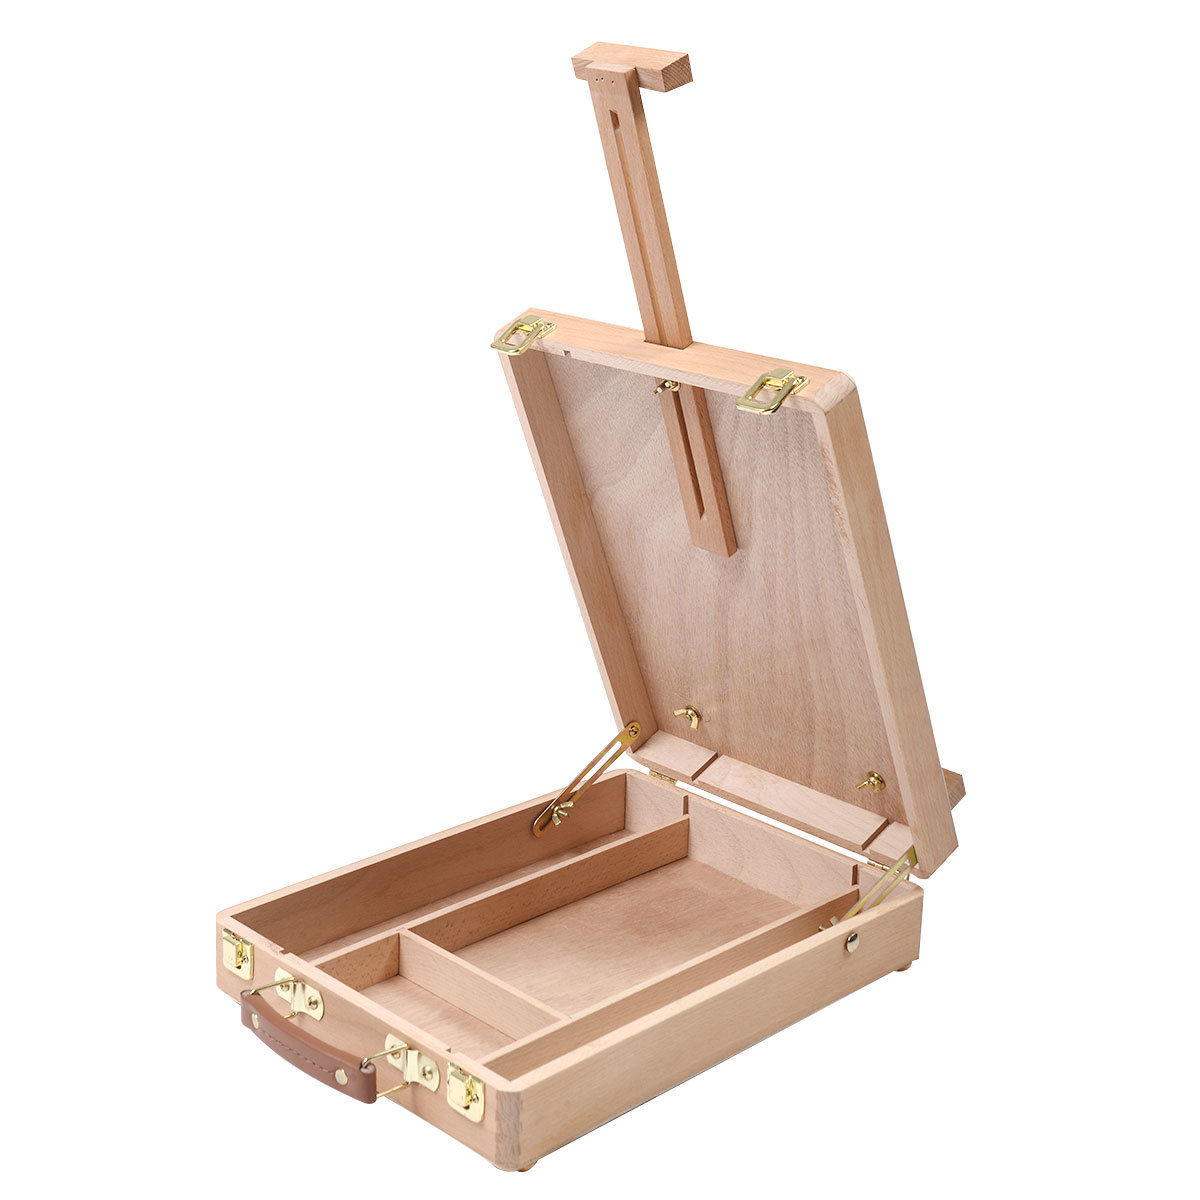 Easel Artist Craft with Integrated Wooden Box Art Drawing Painting Table Box table easel artist craft with integrated wooden box art drawing painting table box scll